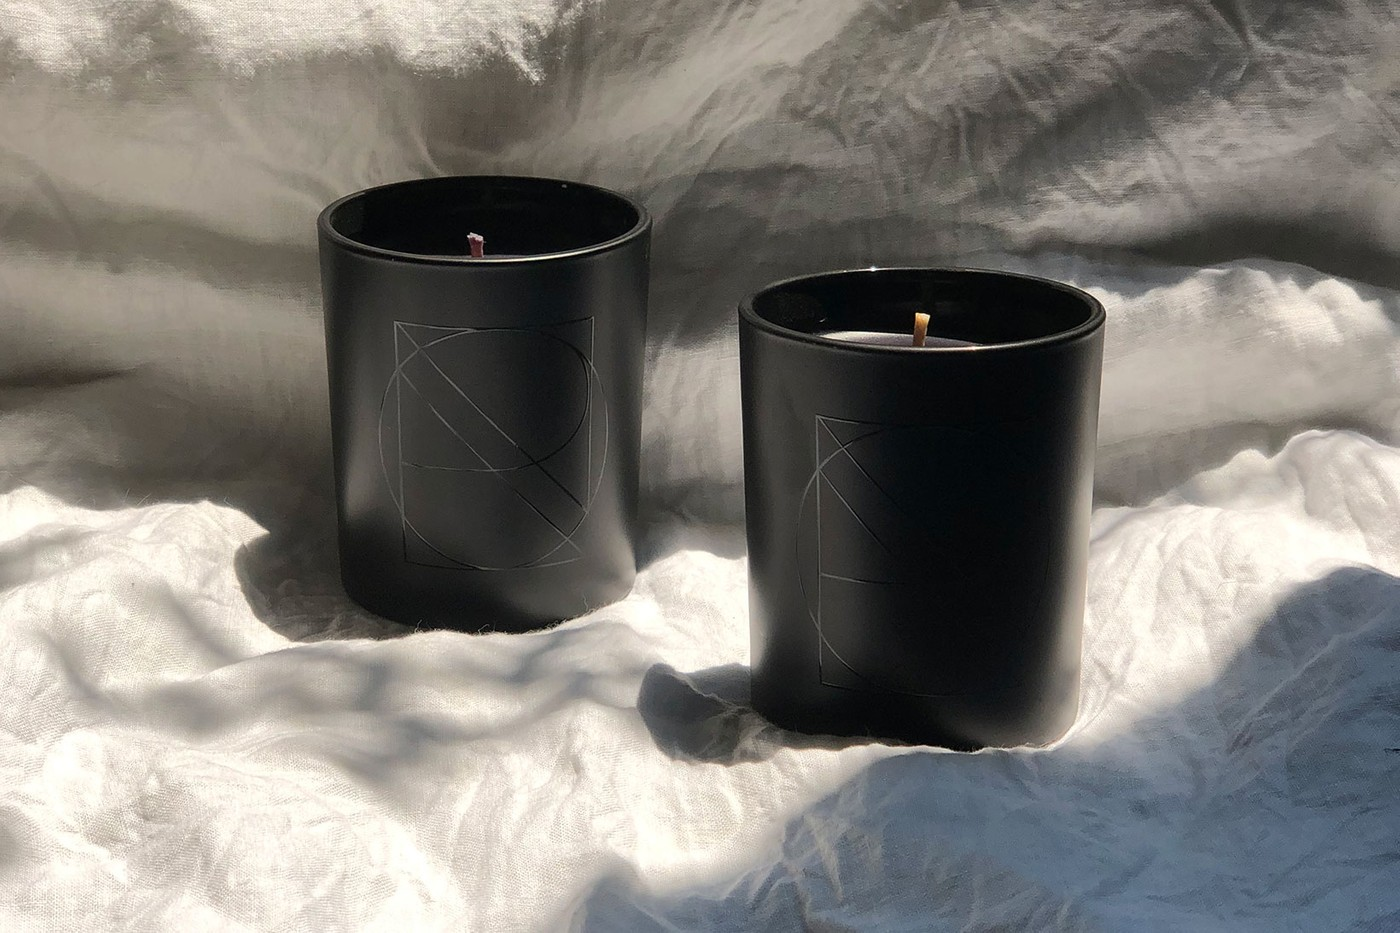 nanor candles black chic homeware woody floral fragrance aroma montreal